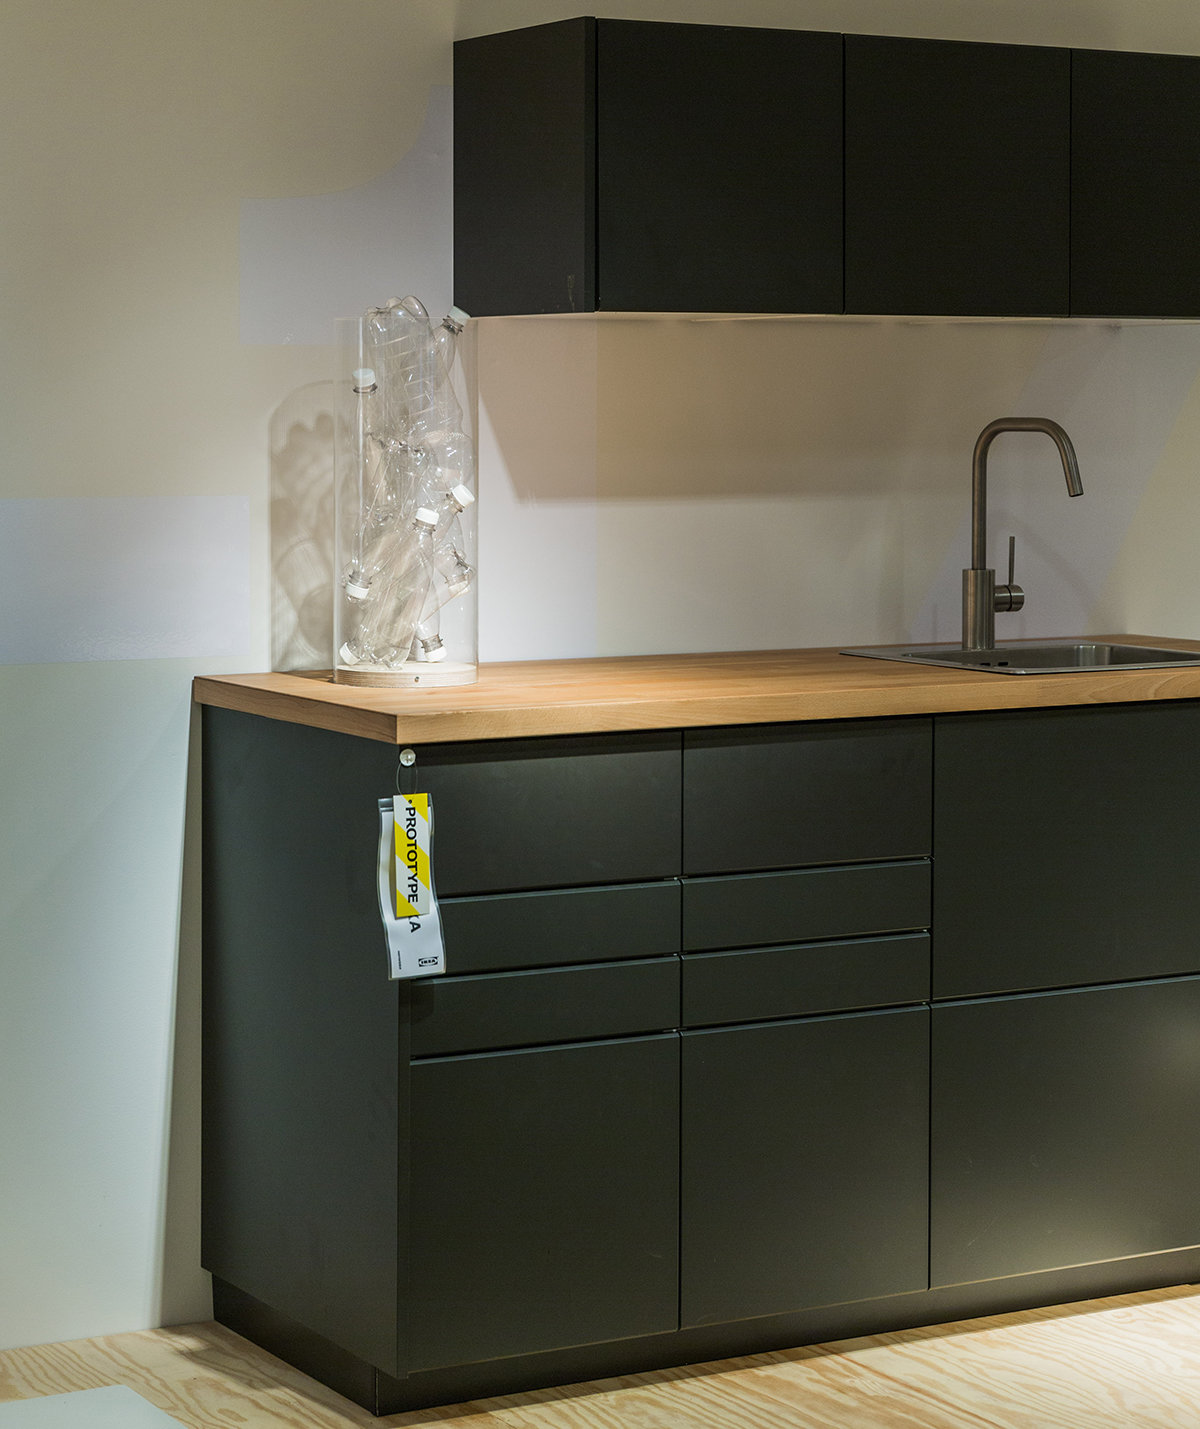 Ikea Kitchen Wood Cabinets: Ikea Is Turning Recycled Bottles Into Kitchen Cabinets